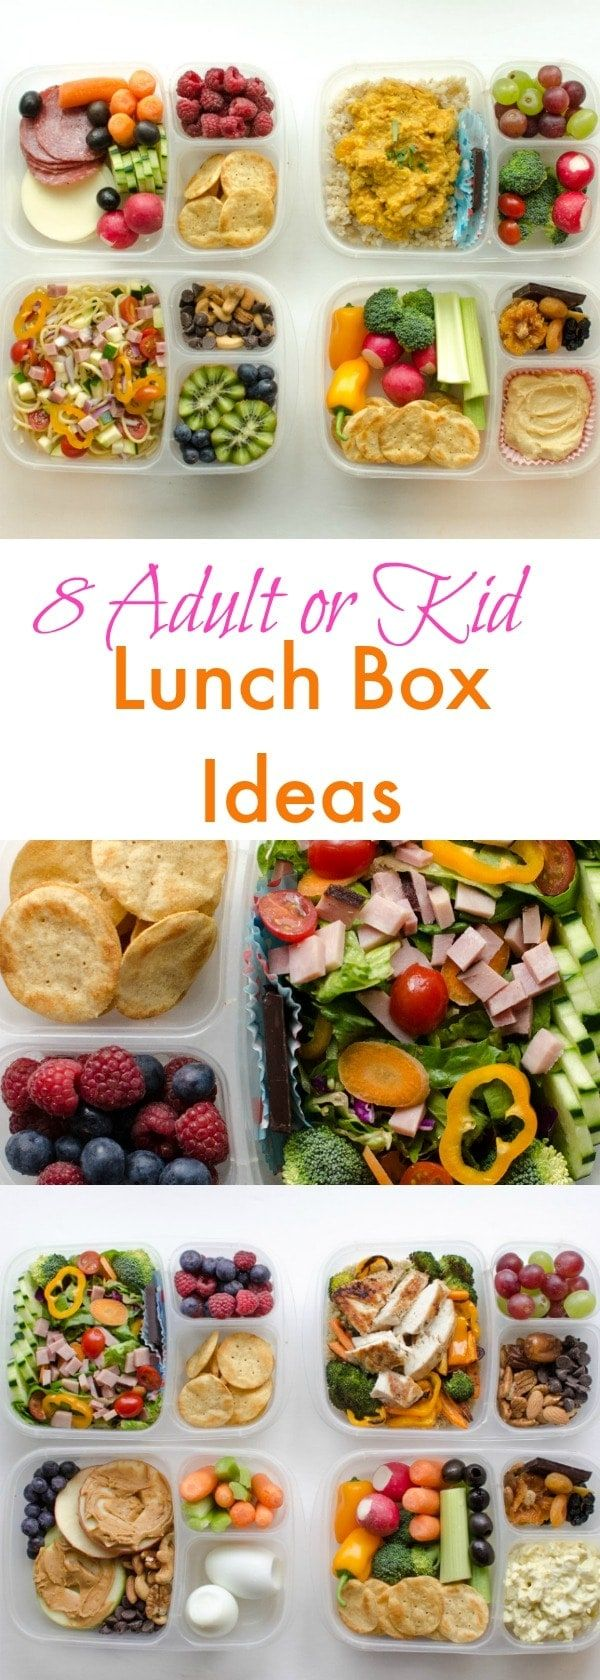 Looking for easy & healthy adult lunch ideas? These wholesome lunches are perfec...